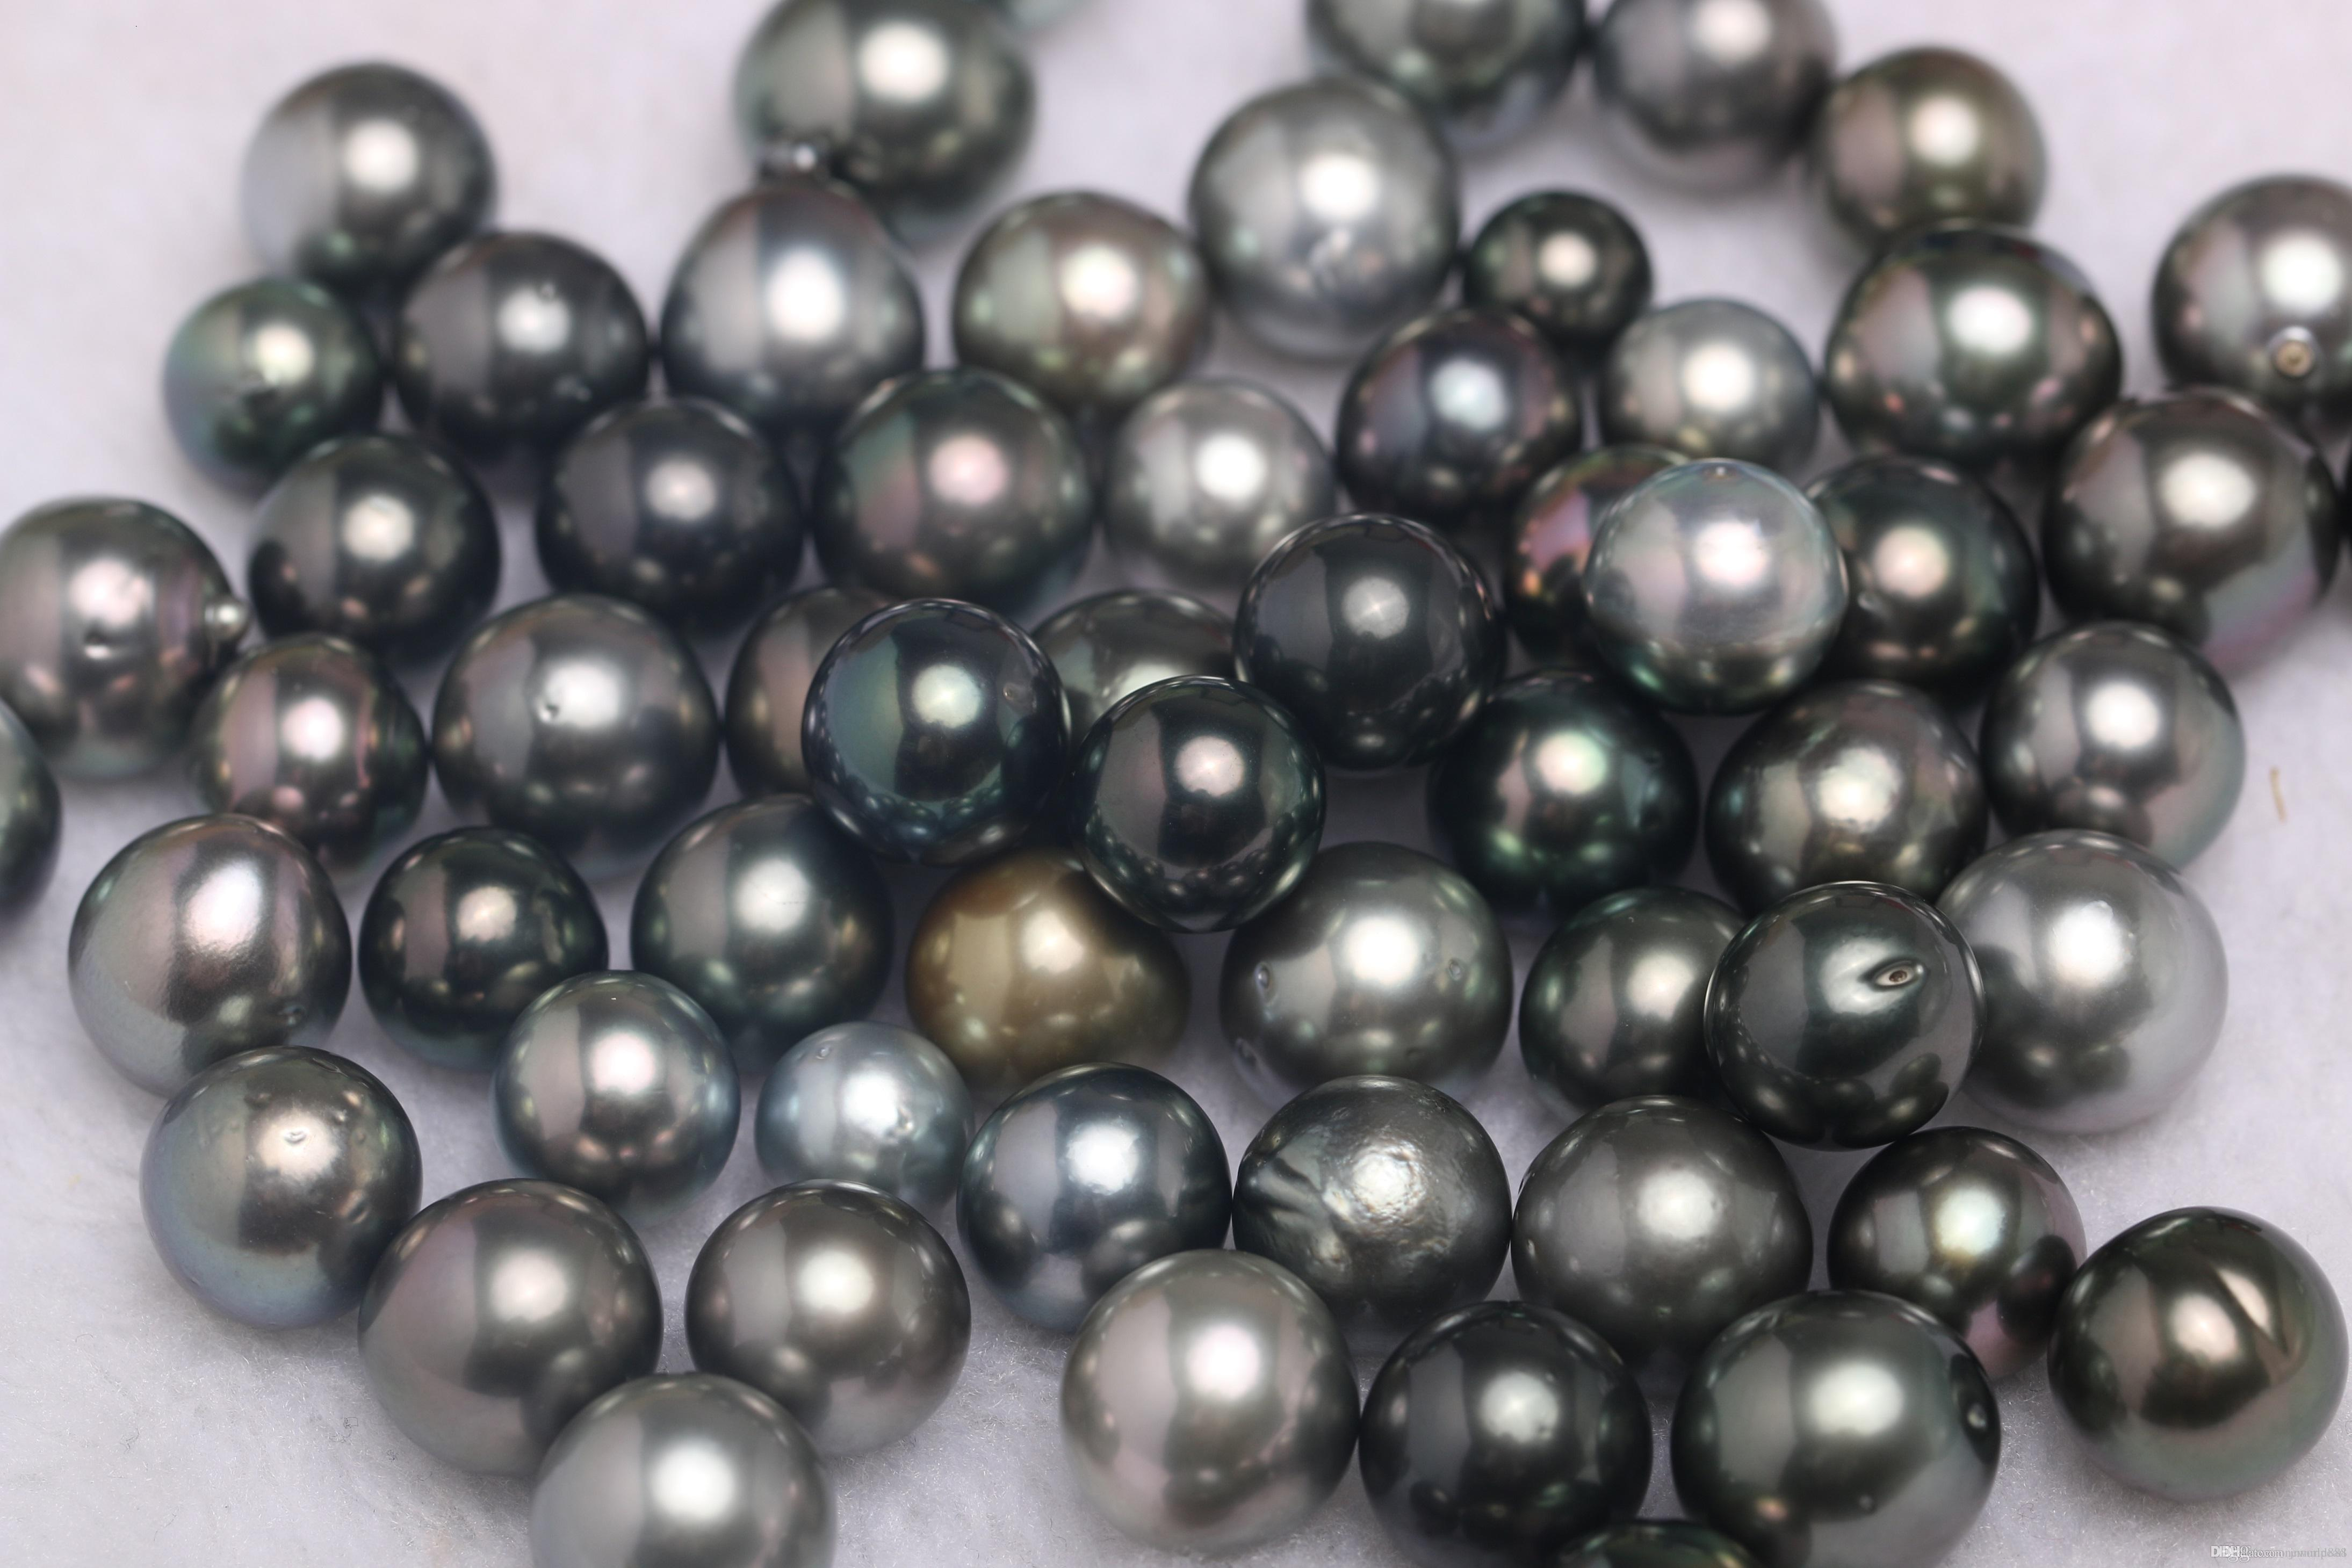 f30495e88 2019 JNMM Tahitian Pearl 10 11mm Black Grey Real Round Wholesale Natural  Seawater Pearl Hot Sale Gifts For Women From Jnmmpearl, $94.78 | DHgate.Com